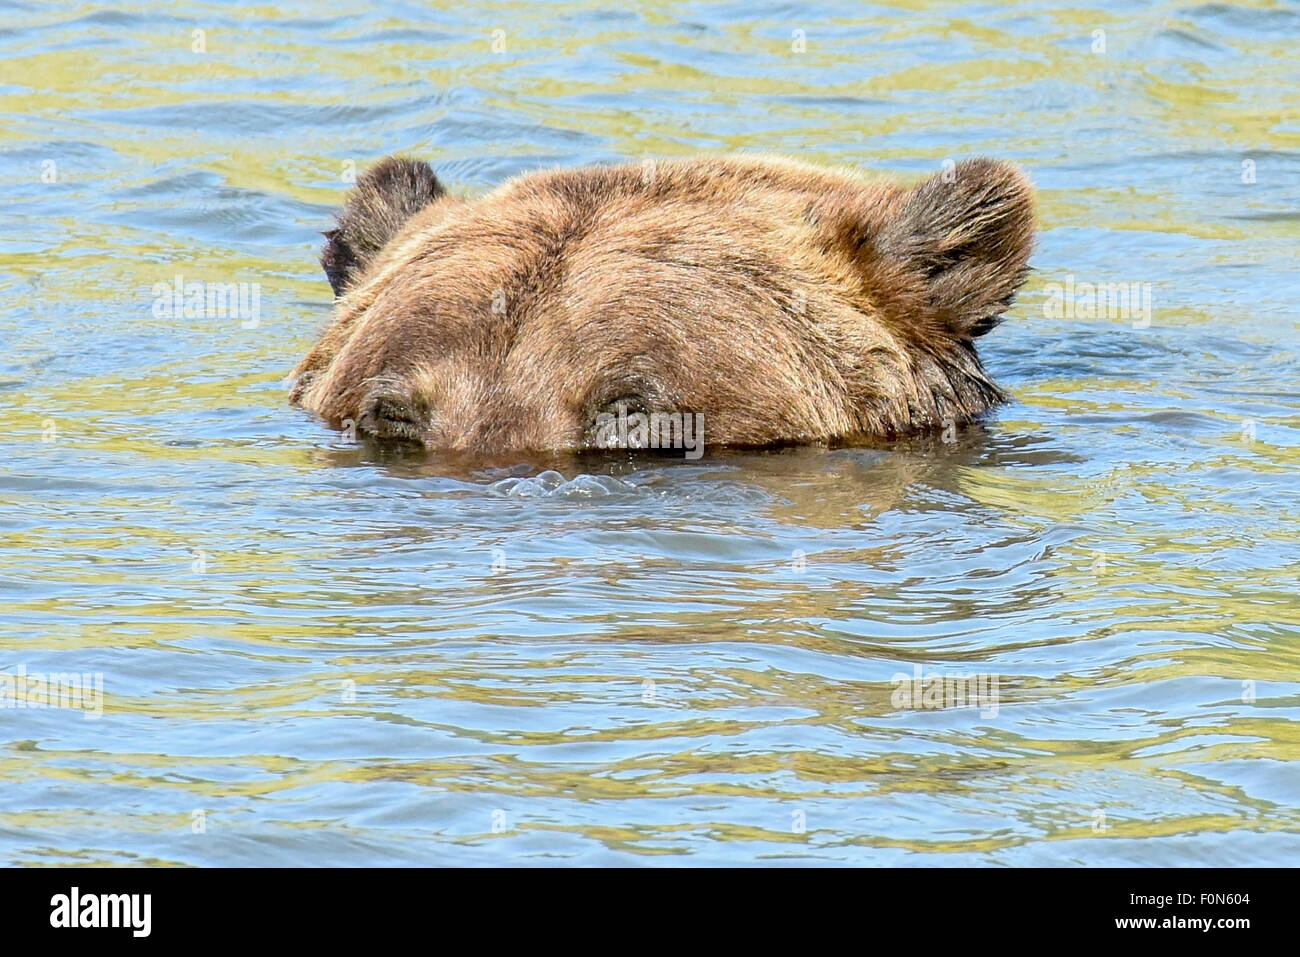 A submerged brown bear / grizzly bear blows bubbles out of his snout in an Alaskan Stream (near Anchorage) - Stock Image